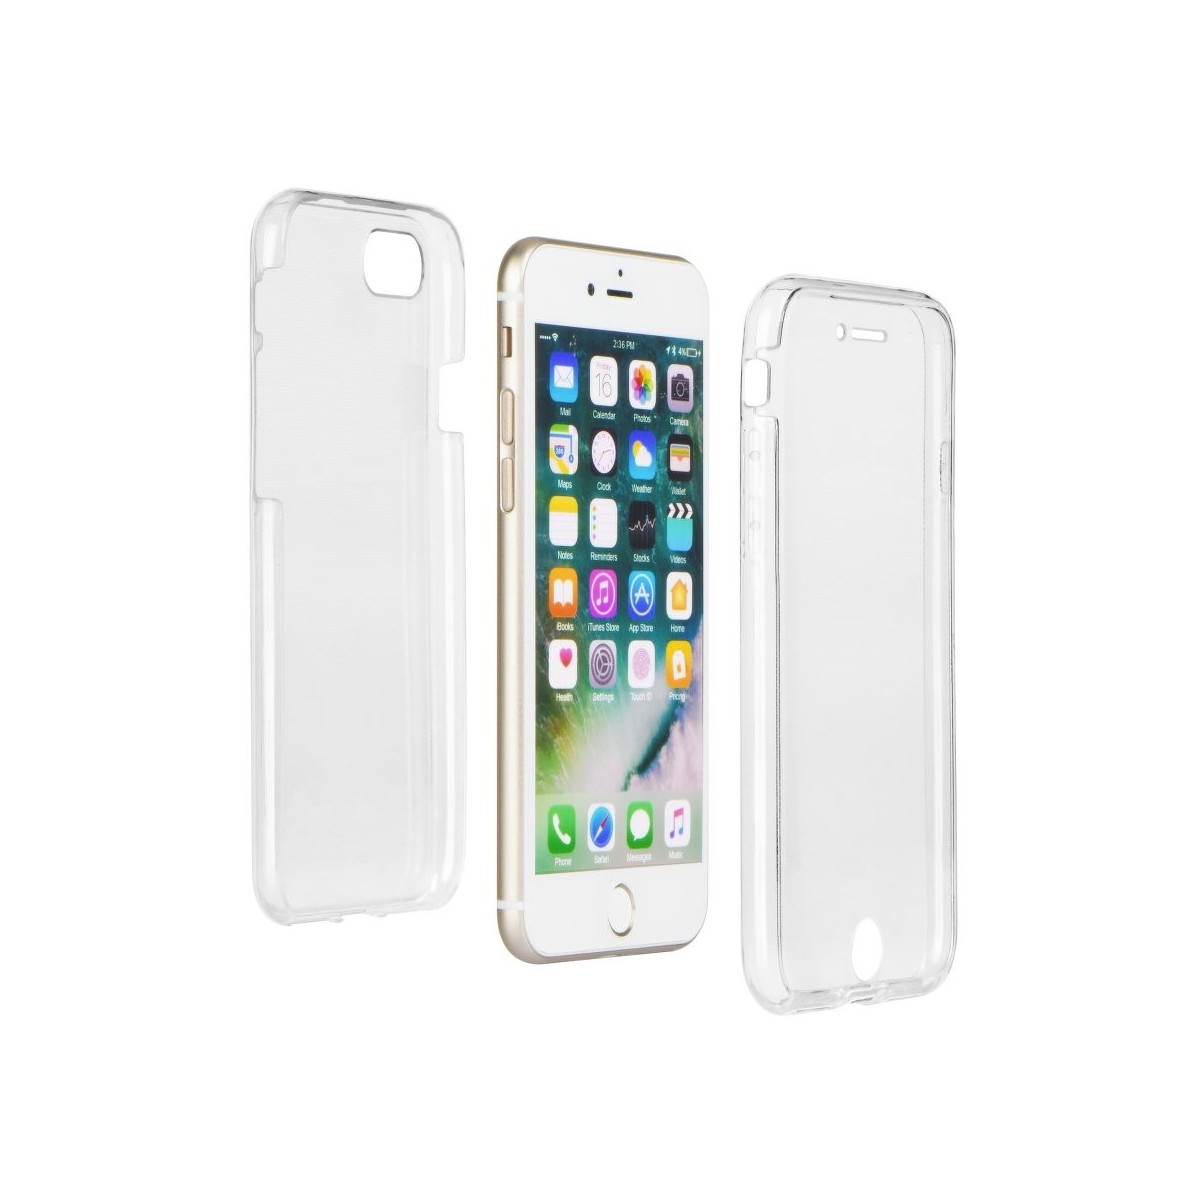 Coque iPhone 6 Plus / 6S Plus protection 360 ° Transparente souple - Crazy Kase